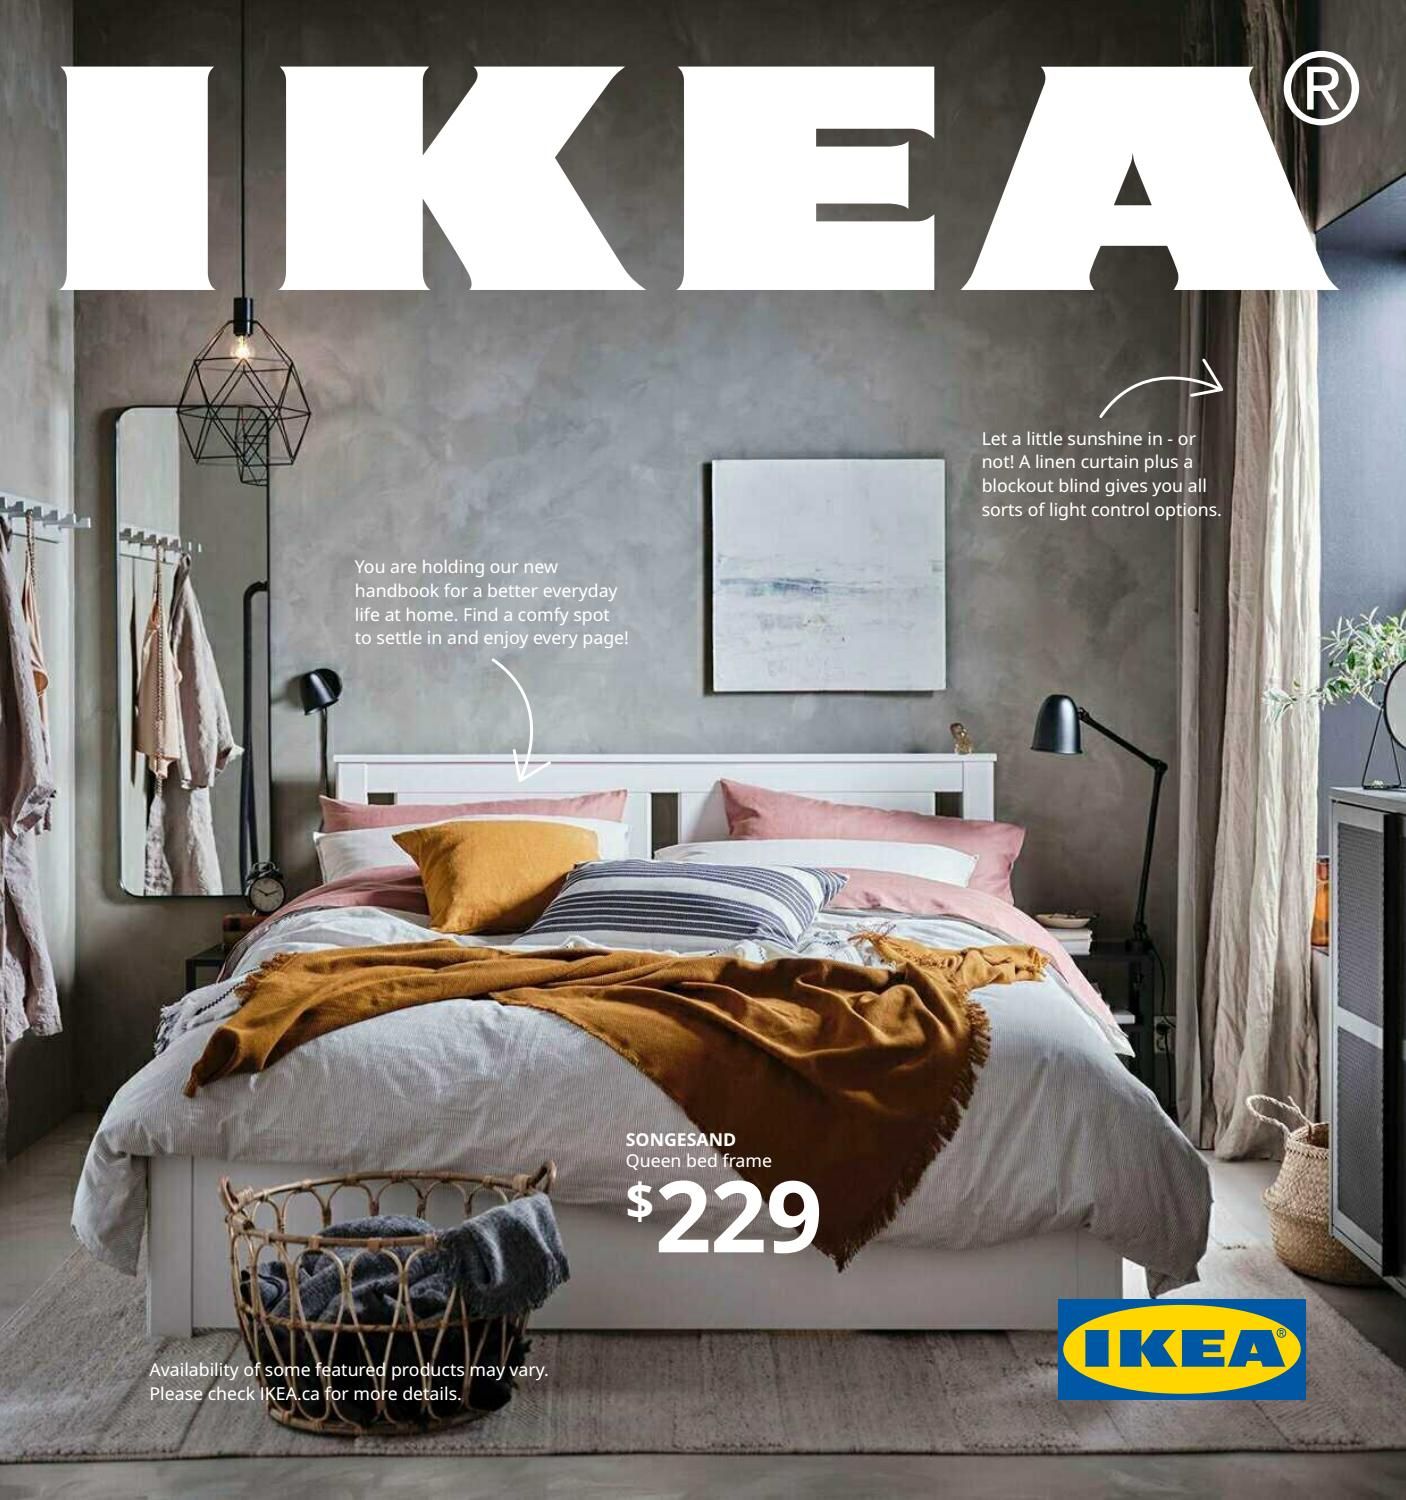 Ikea Vaxmyra LED Spotlight White 704.218.70